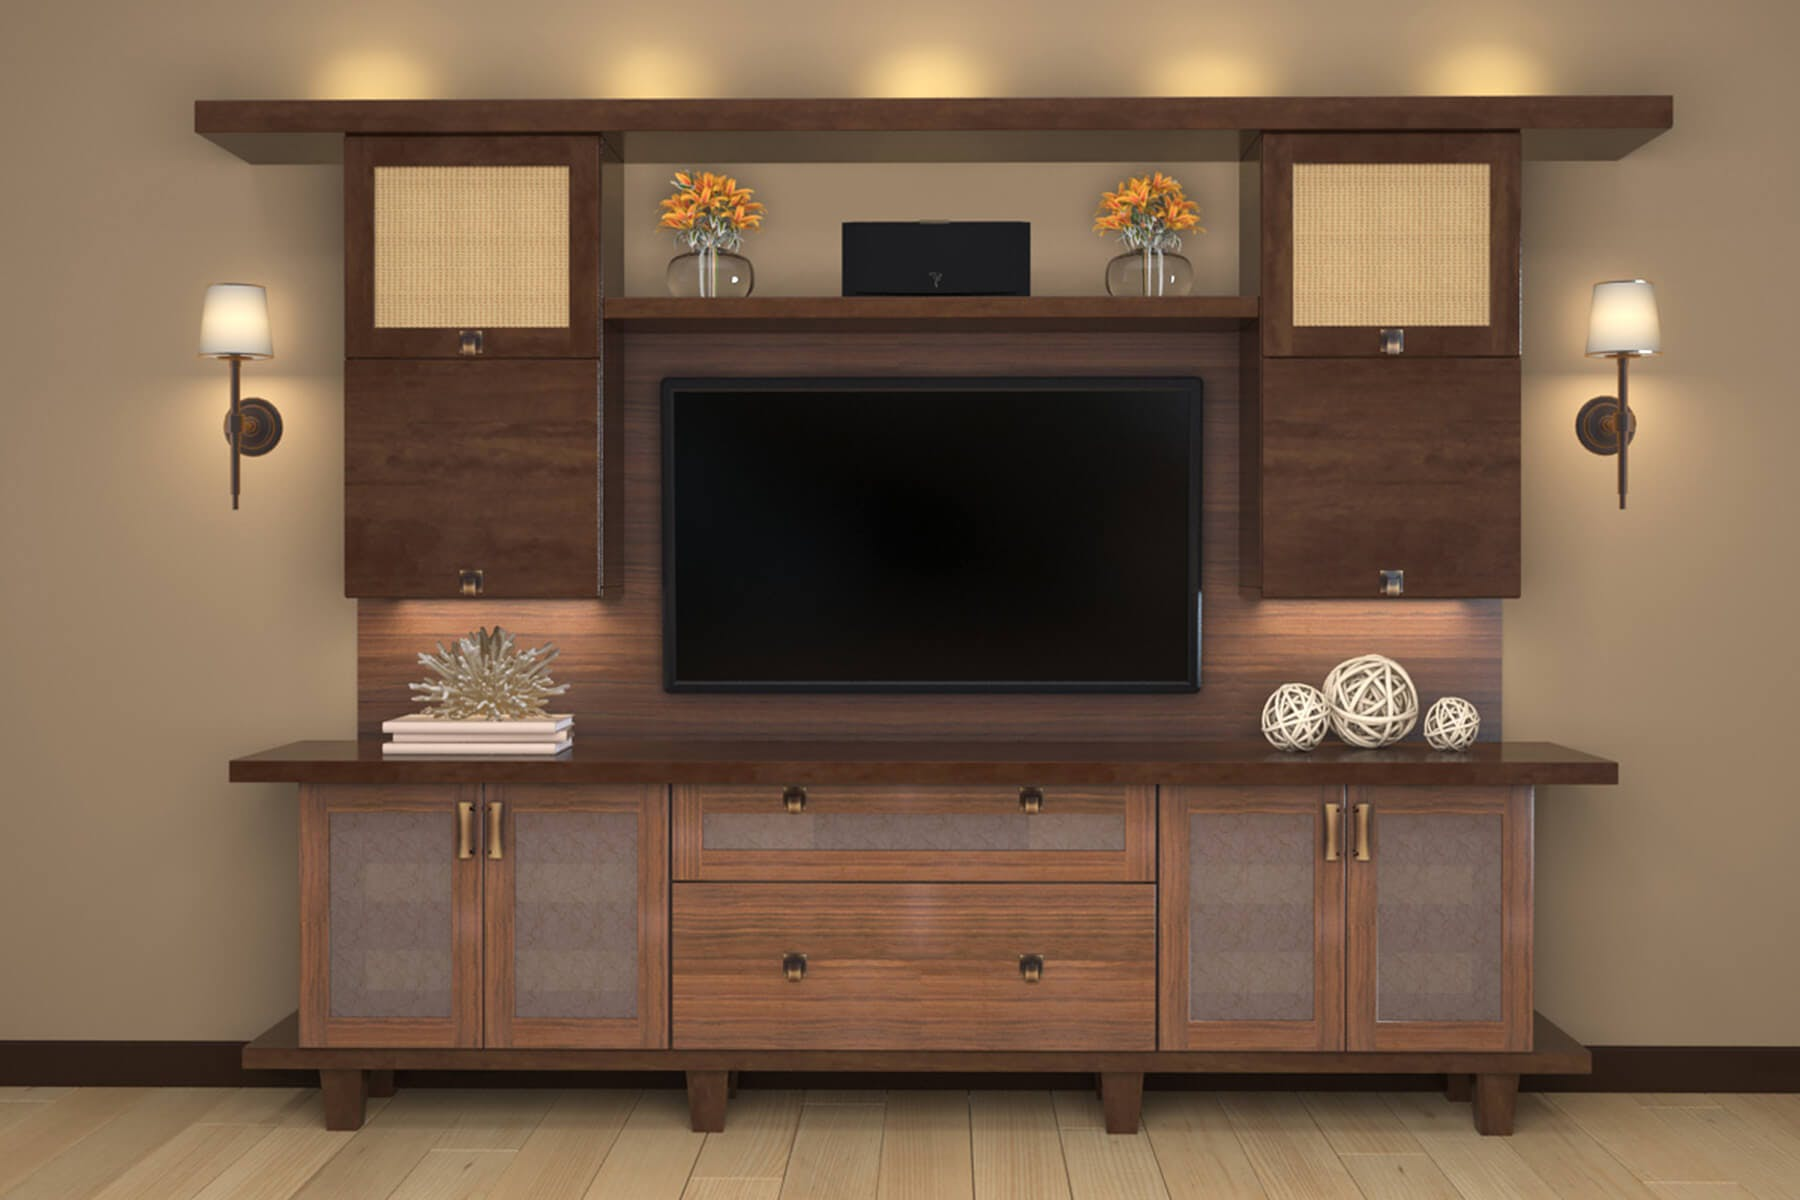 Entertainment Centers 69 Modern Tv Media Center In Stained Wood And Built To Be Freestanding A Living Room